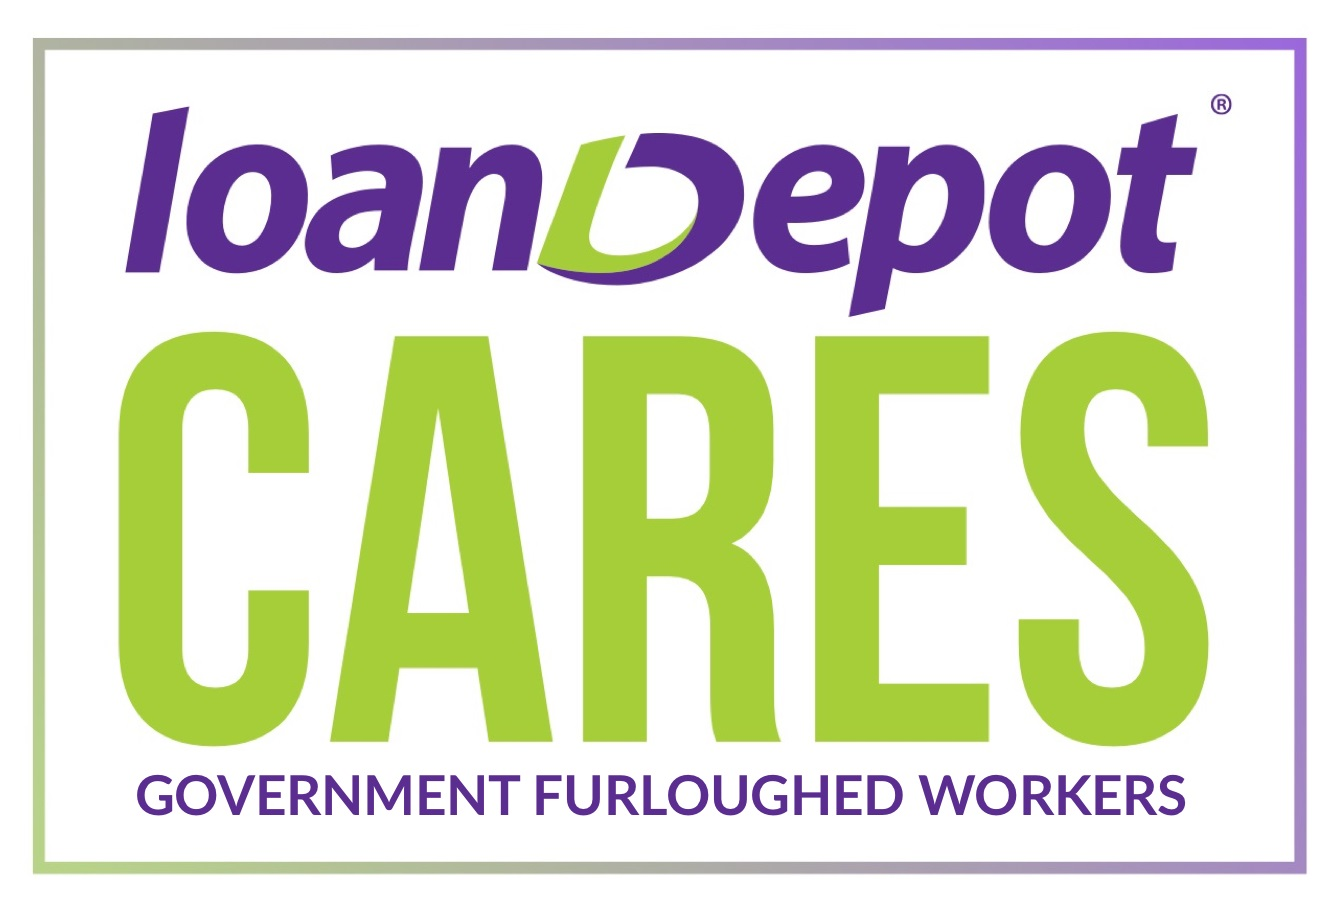 loanDepot Cares Government Furloughed Workers